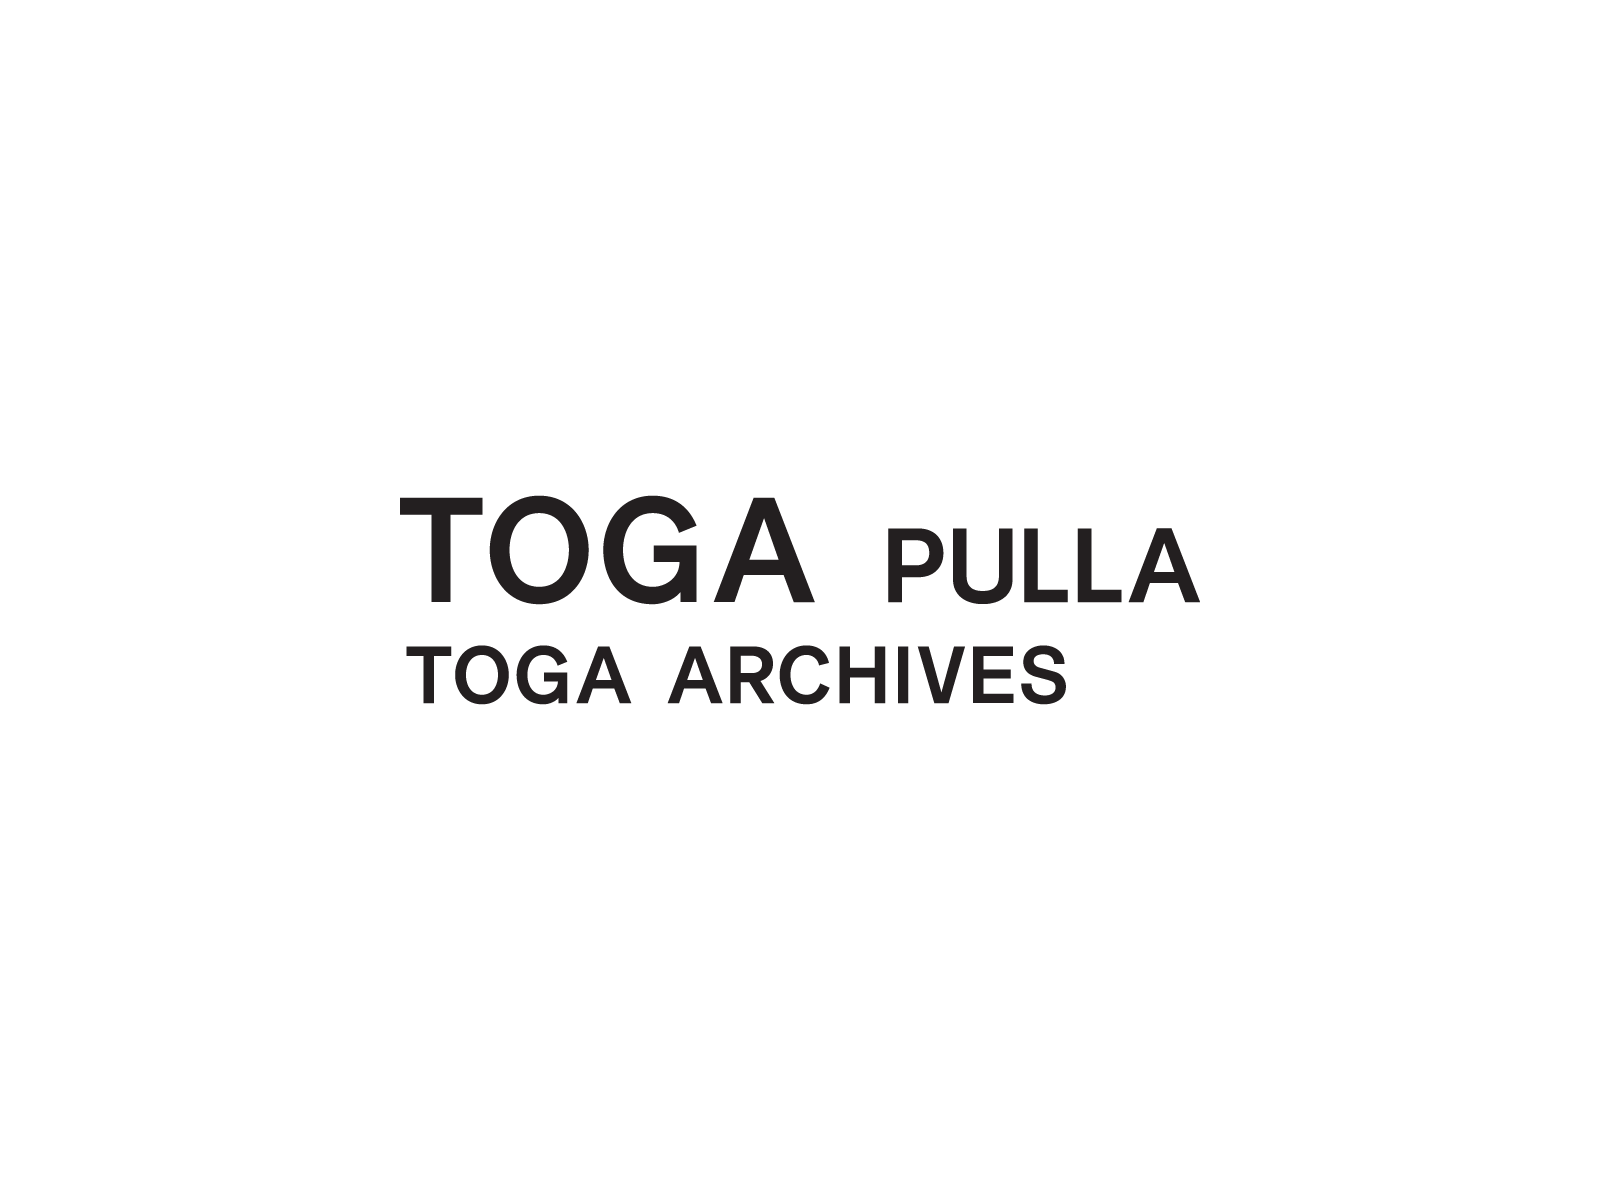 image of Toga Pulla